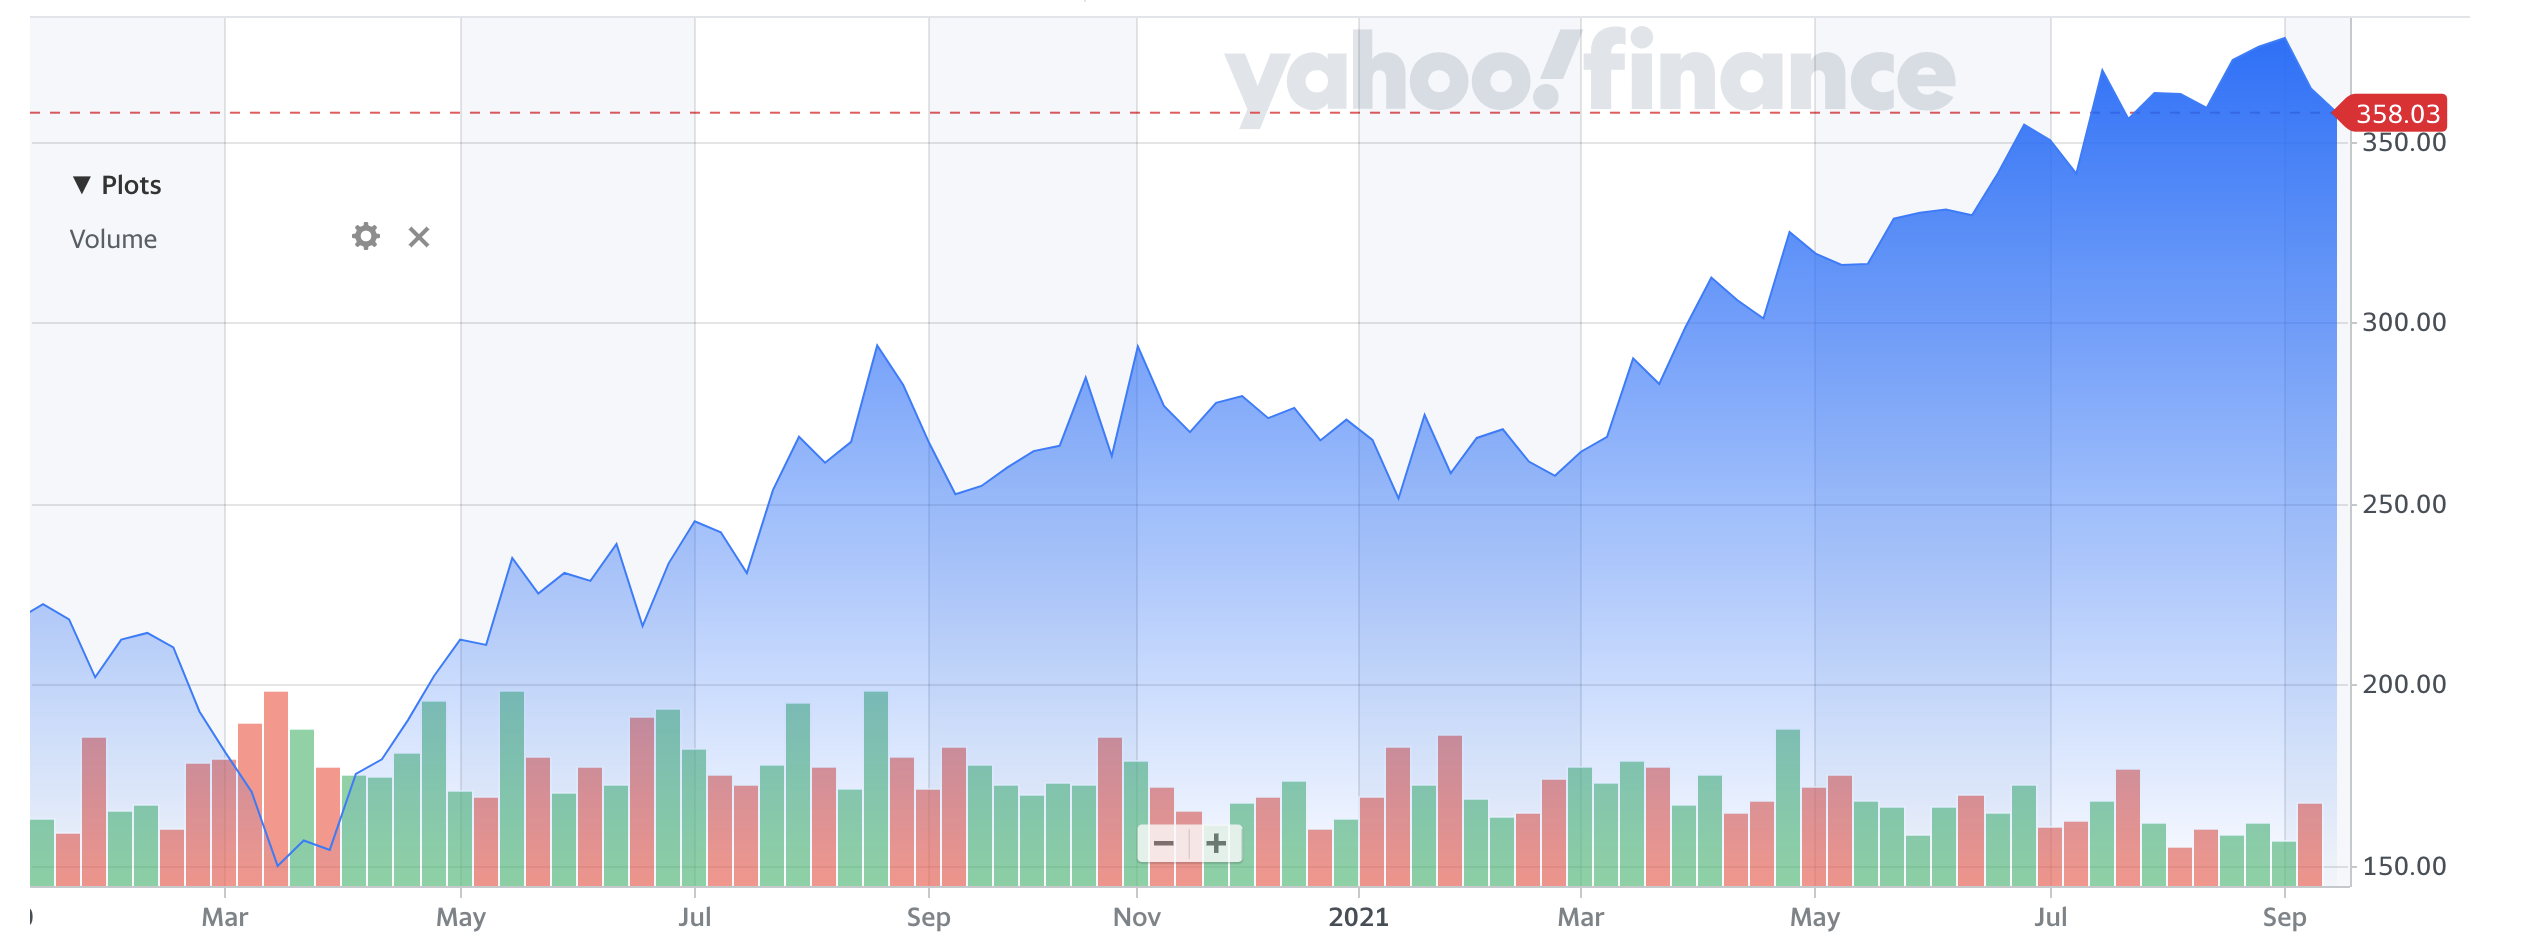 Facebook share price during the COVID pandemic